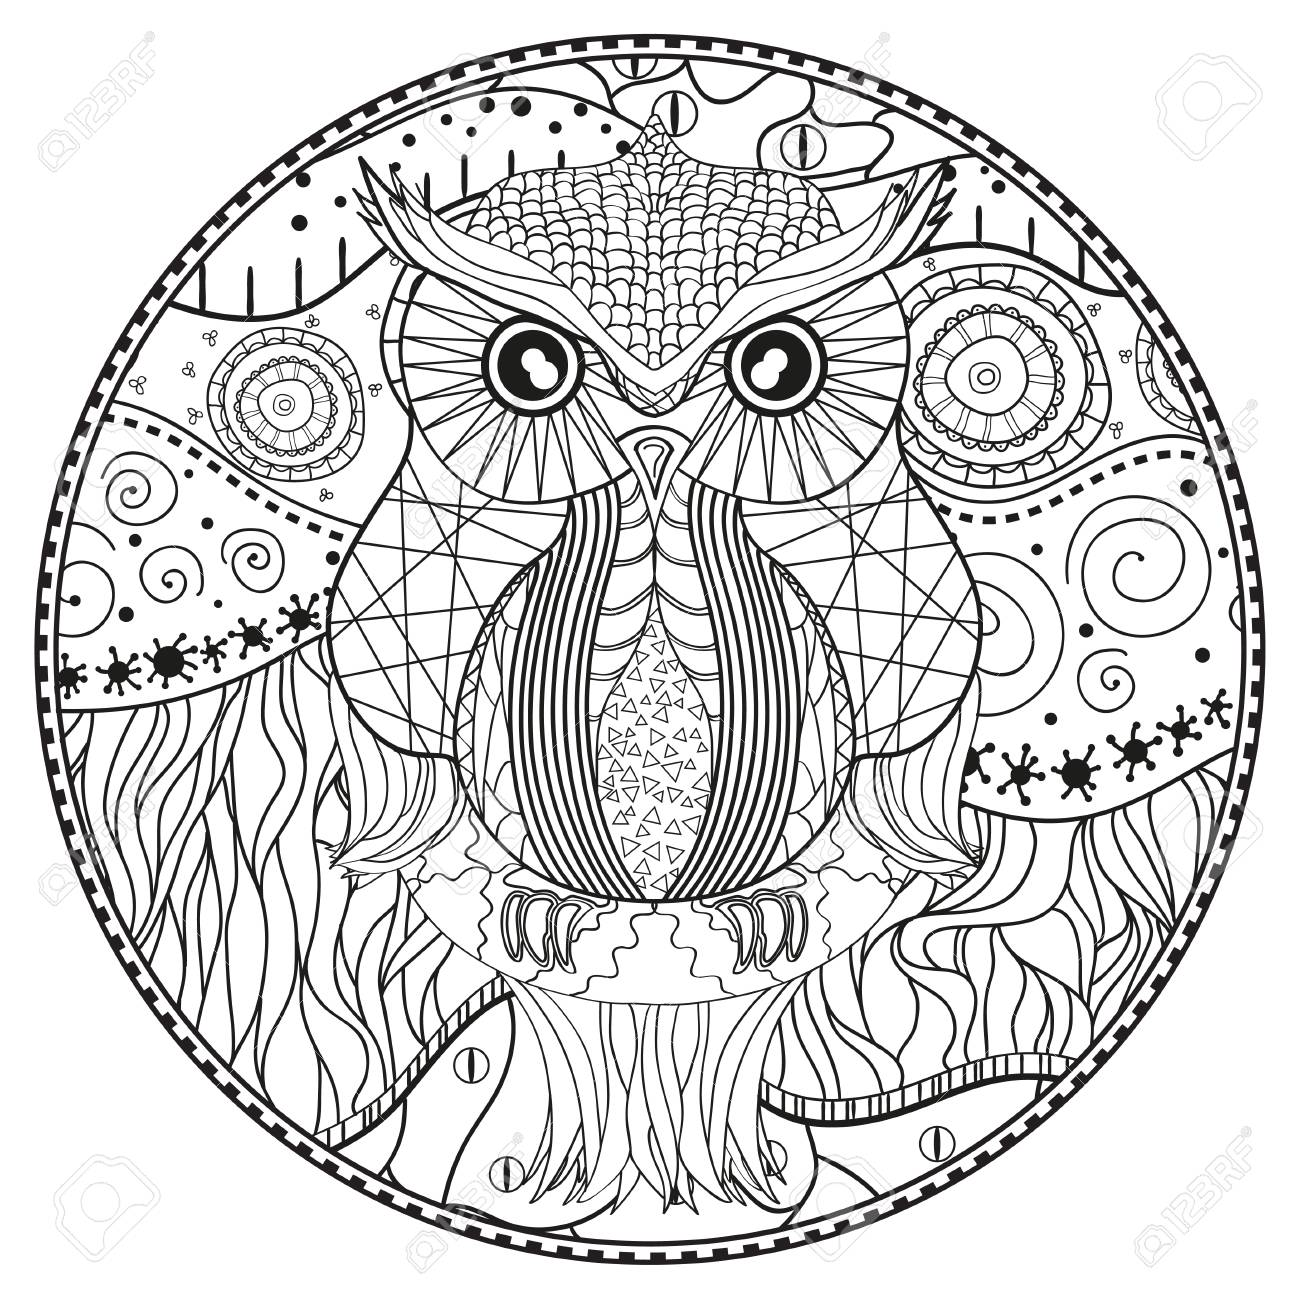 Mandala With Owl Design Hand Drawn Abstract Patterns On Isolation